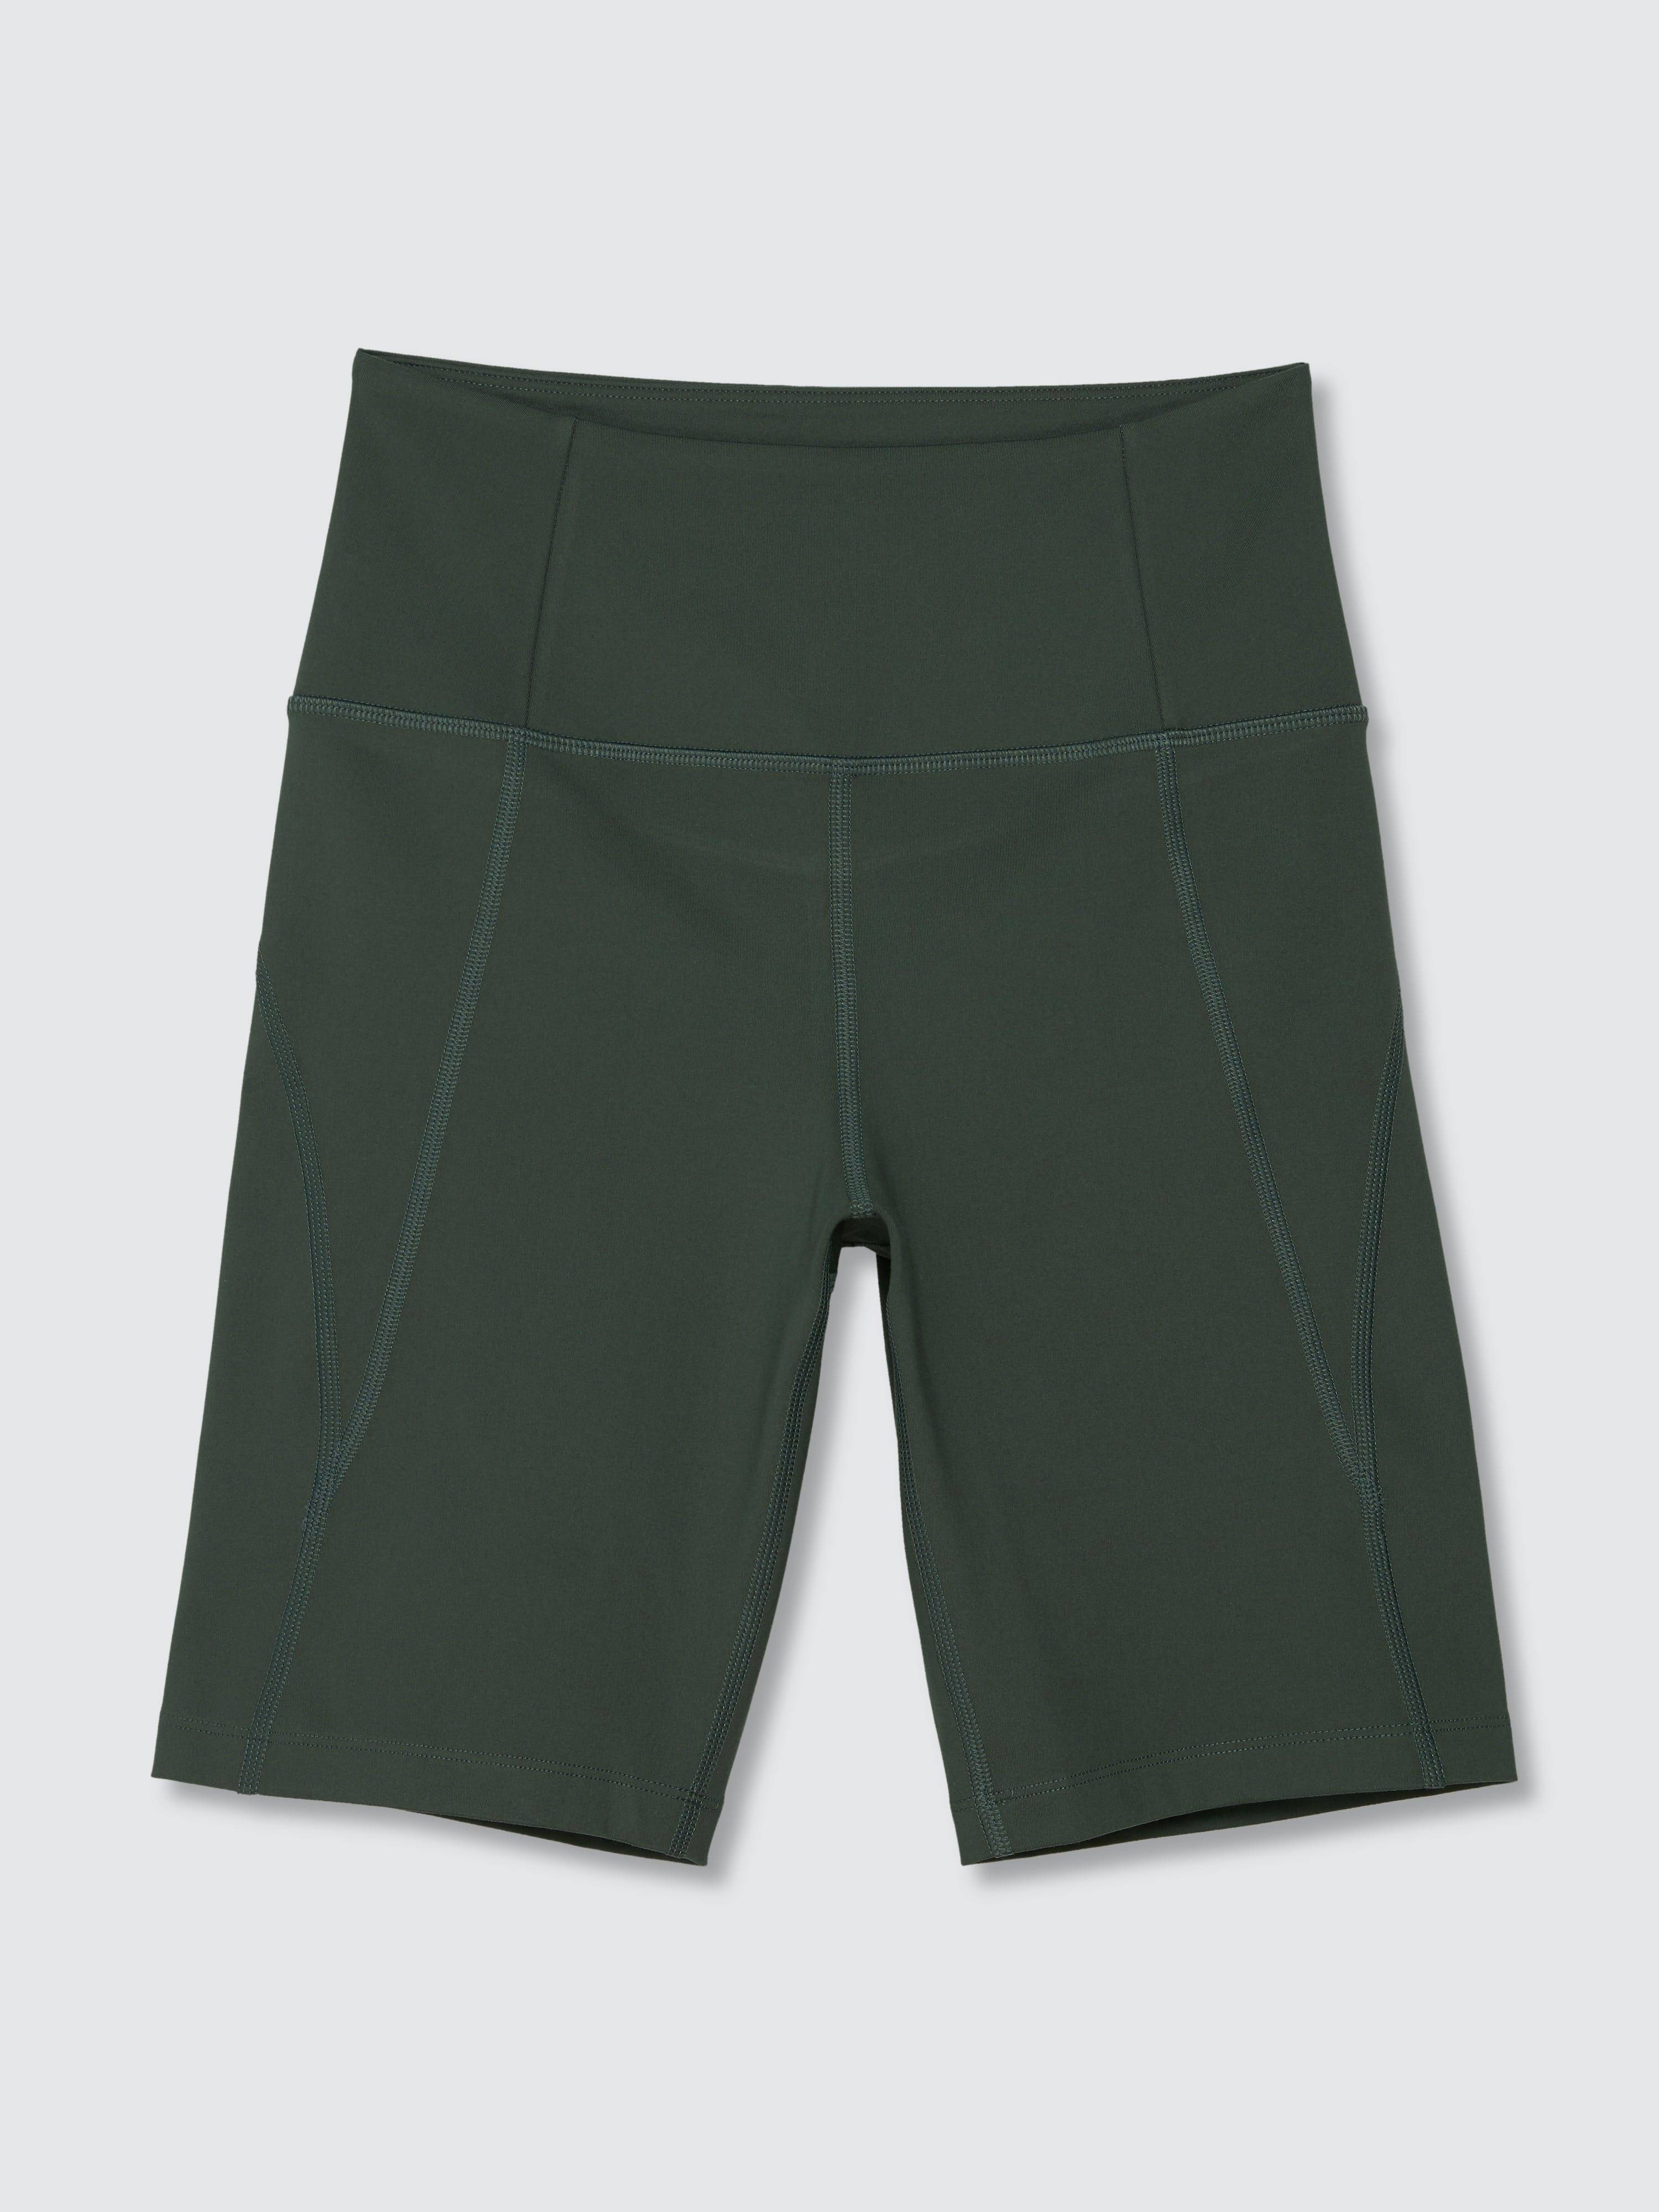 Girlfriend Collective High-Rise Bike Short - XS - Also in: L, XL, M, S  - Grey